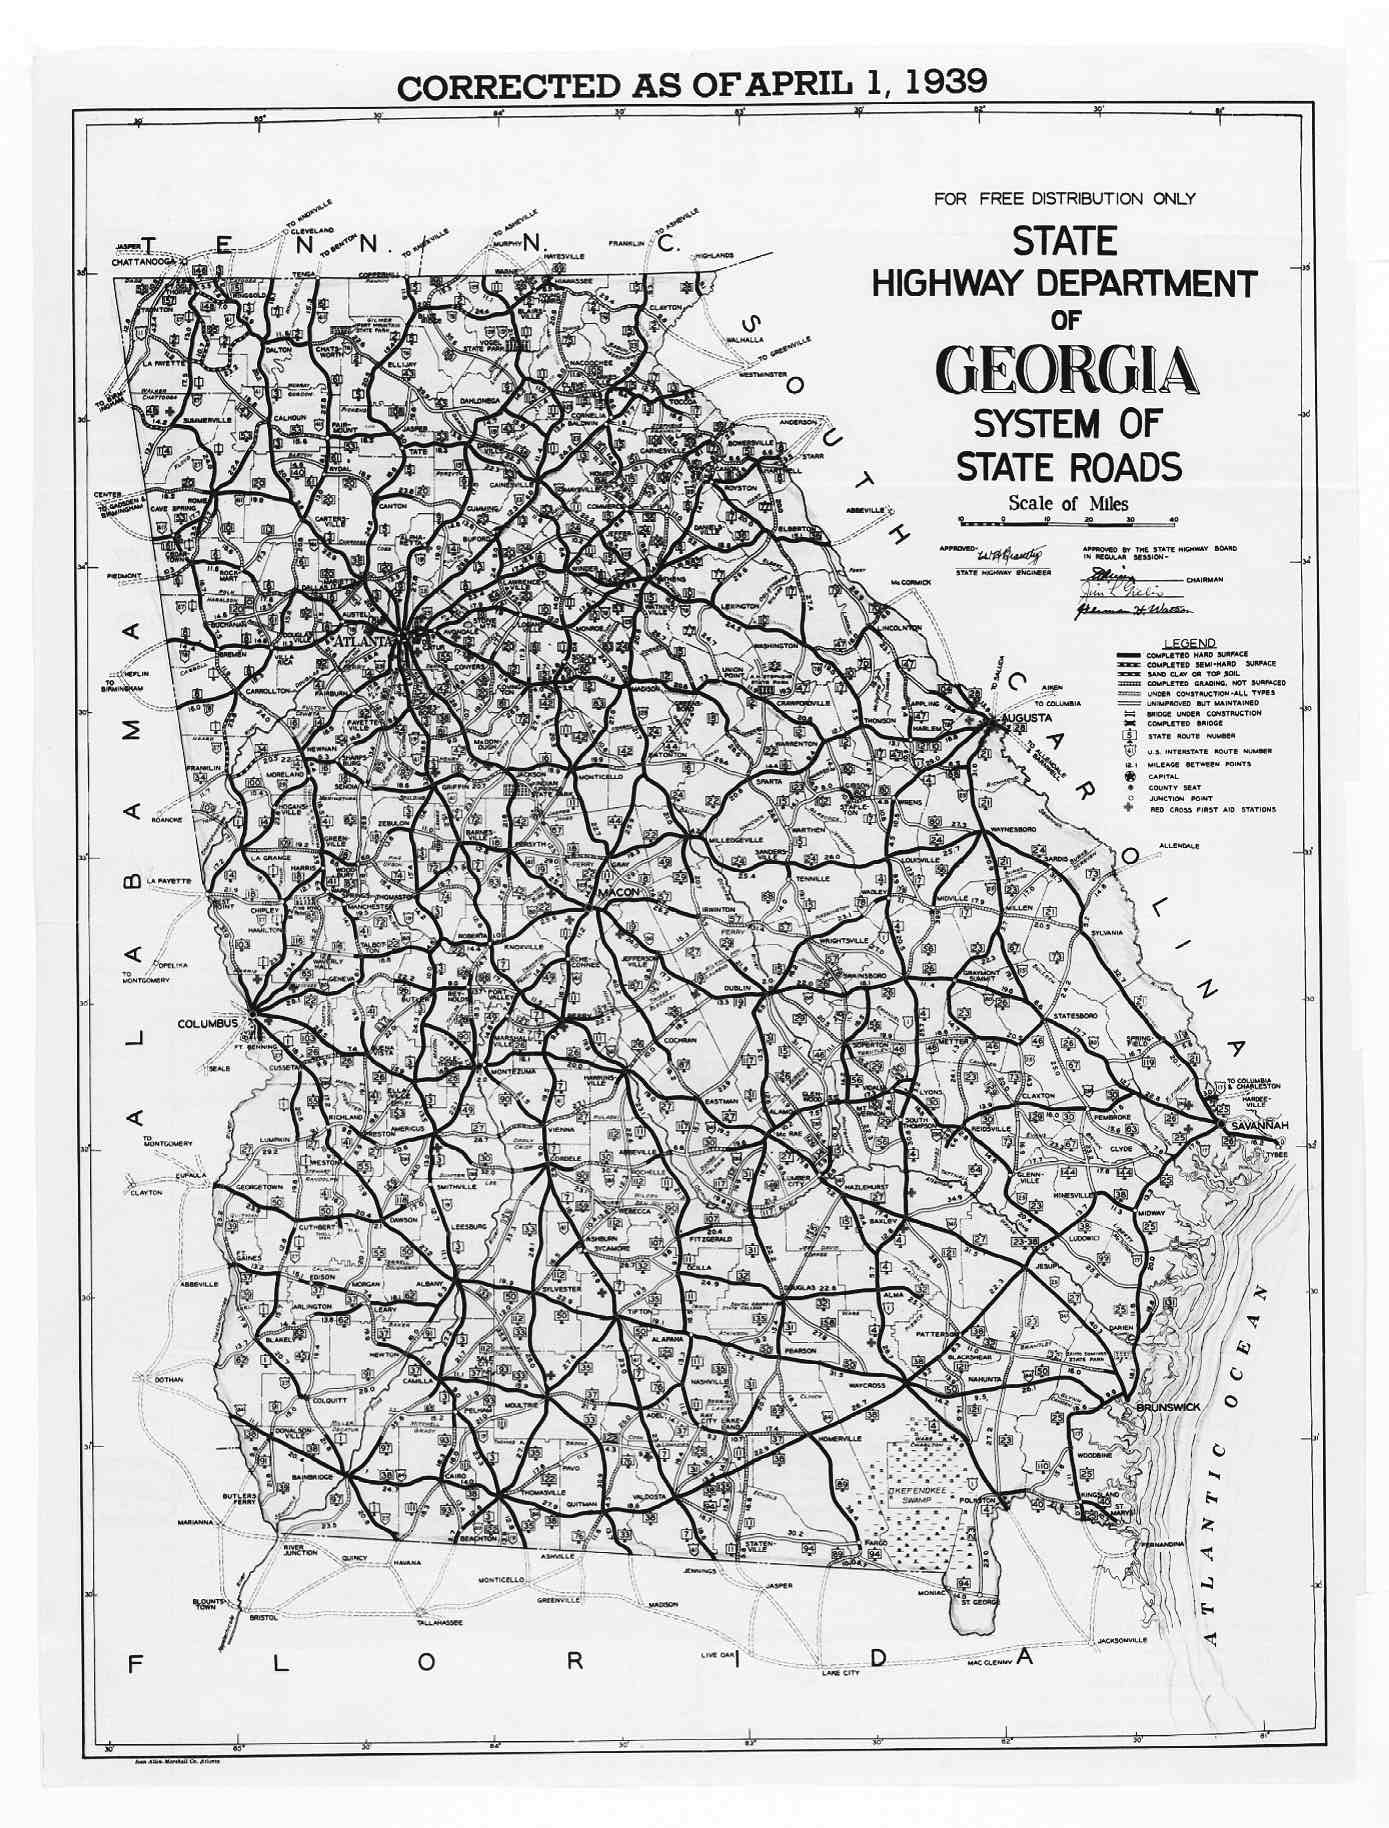 Hargrett Library Rare Map Collection Transportation - Us highway map of georgia